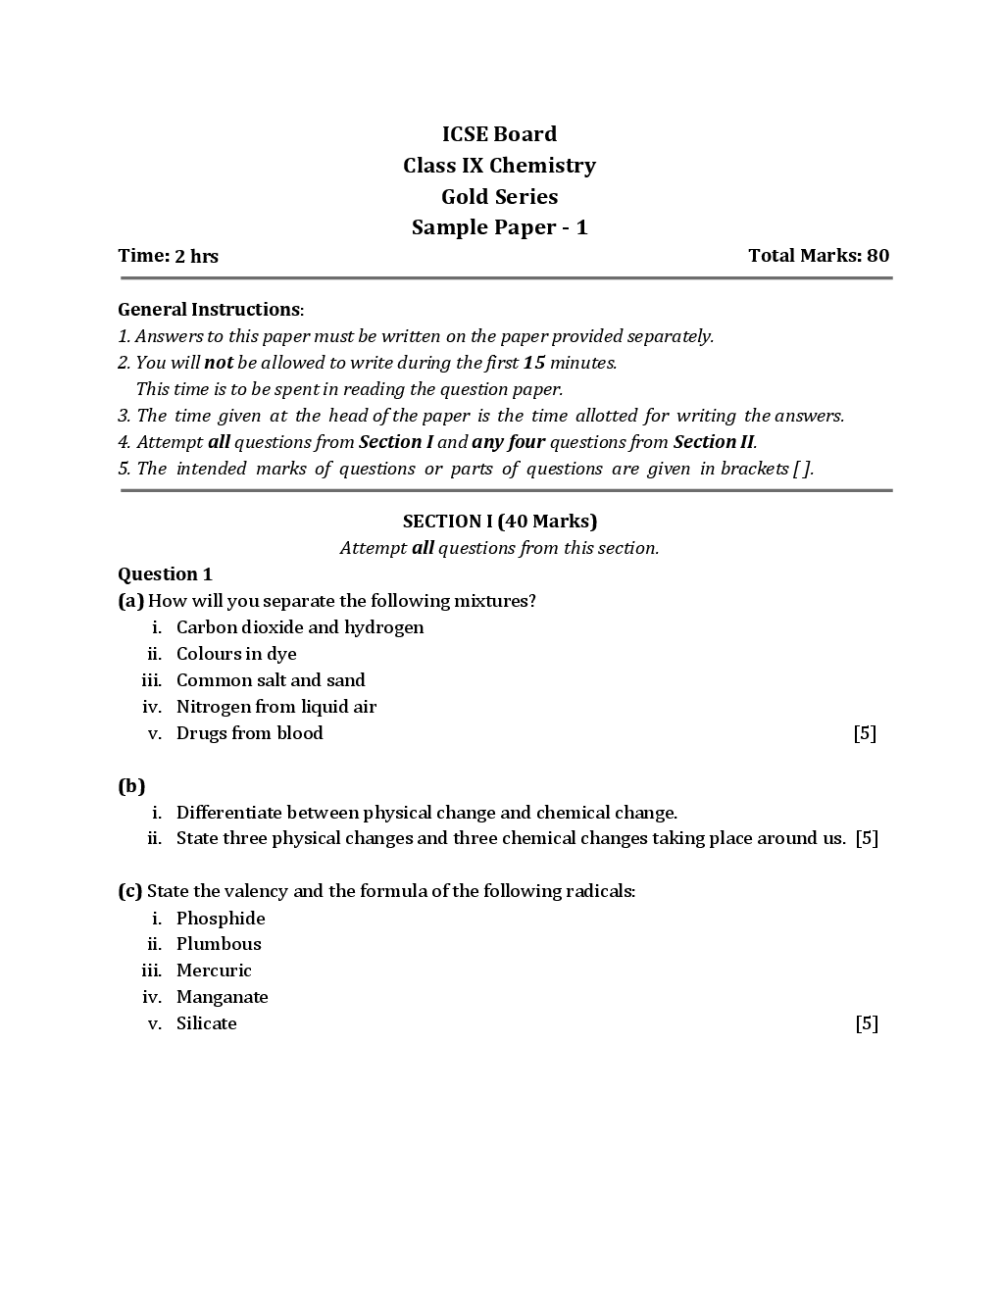 medium resolution of Download ICSE Class 9 Question Paper PDF Online 2020.